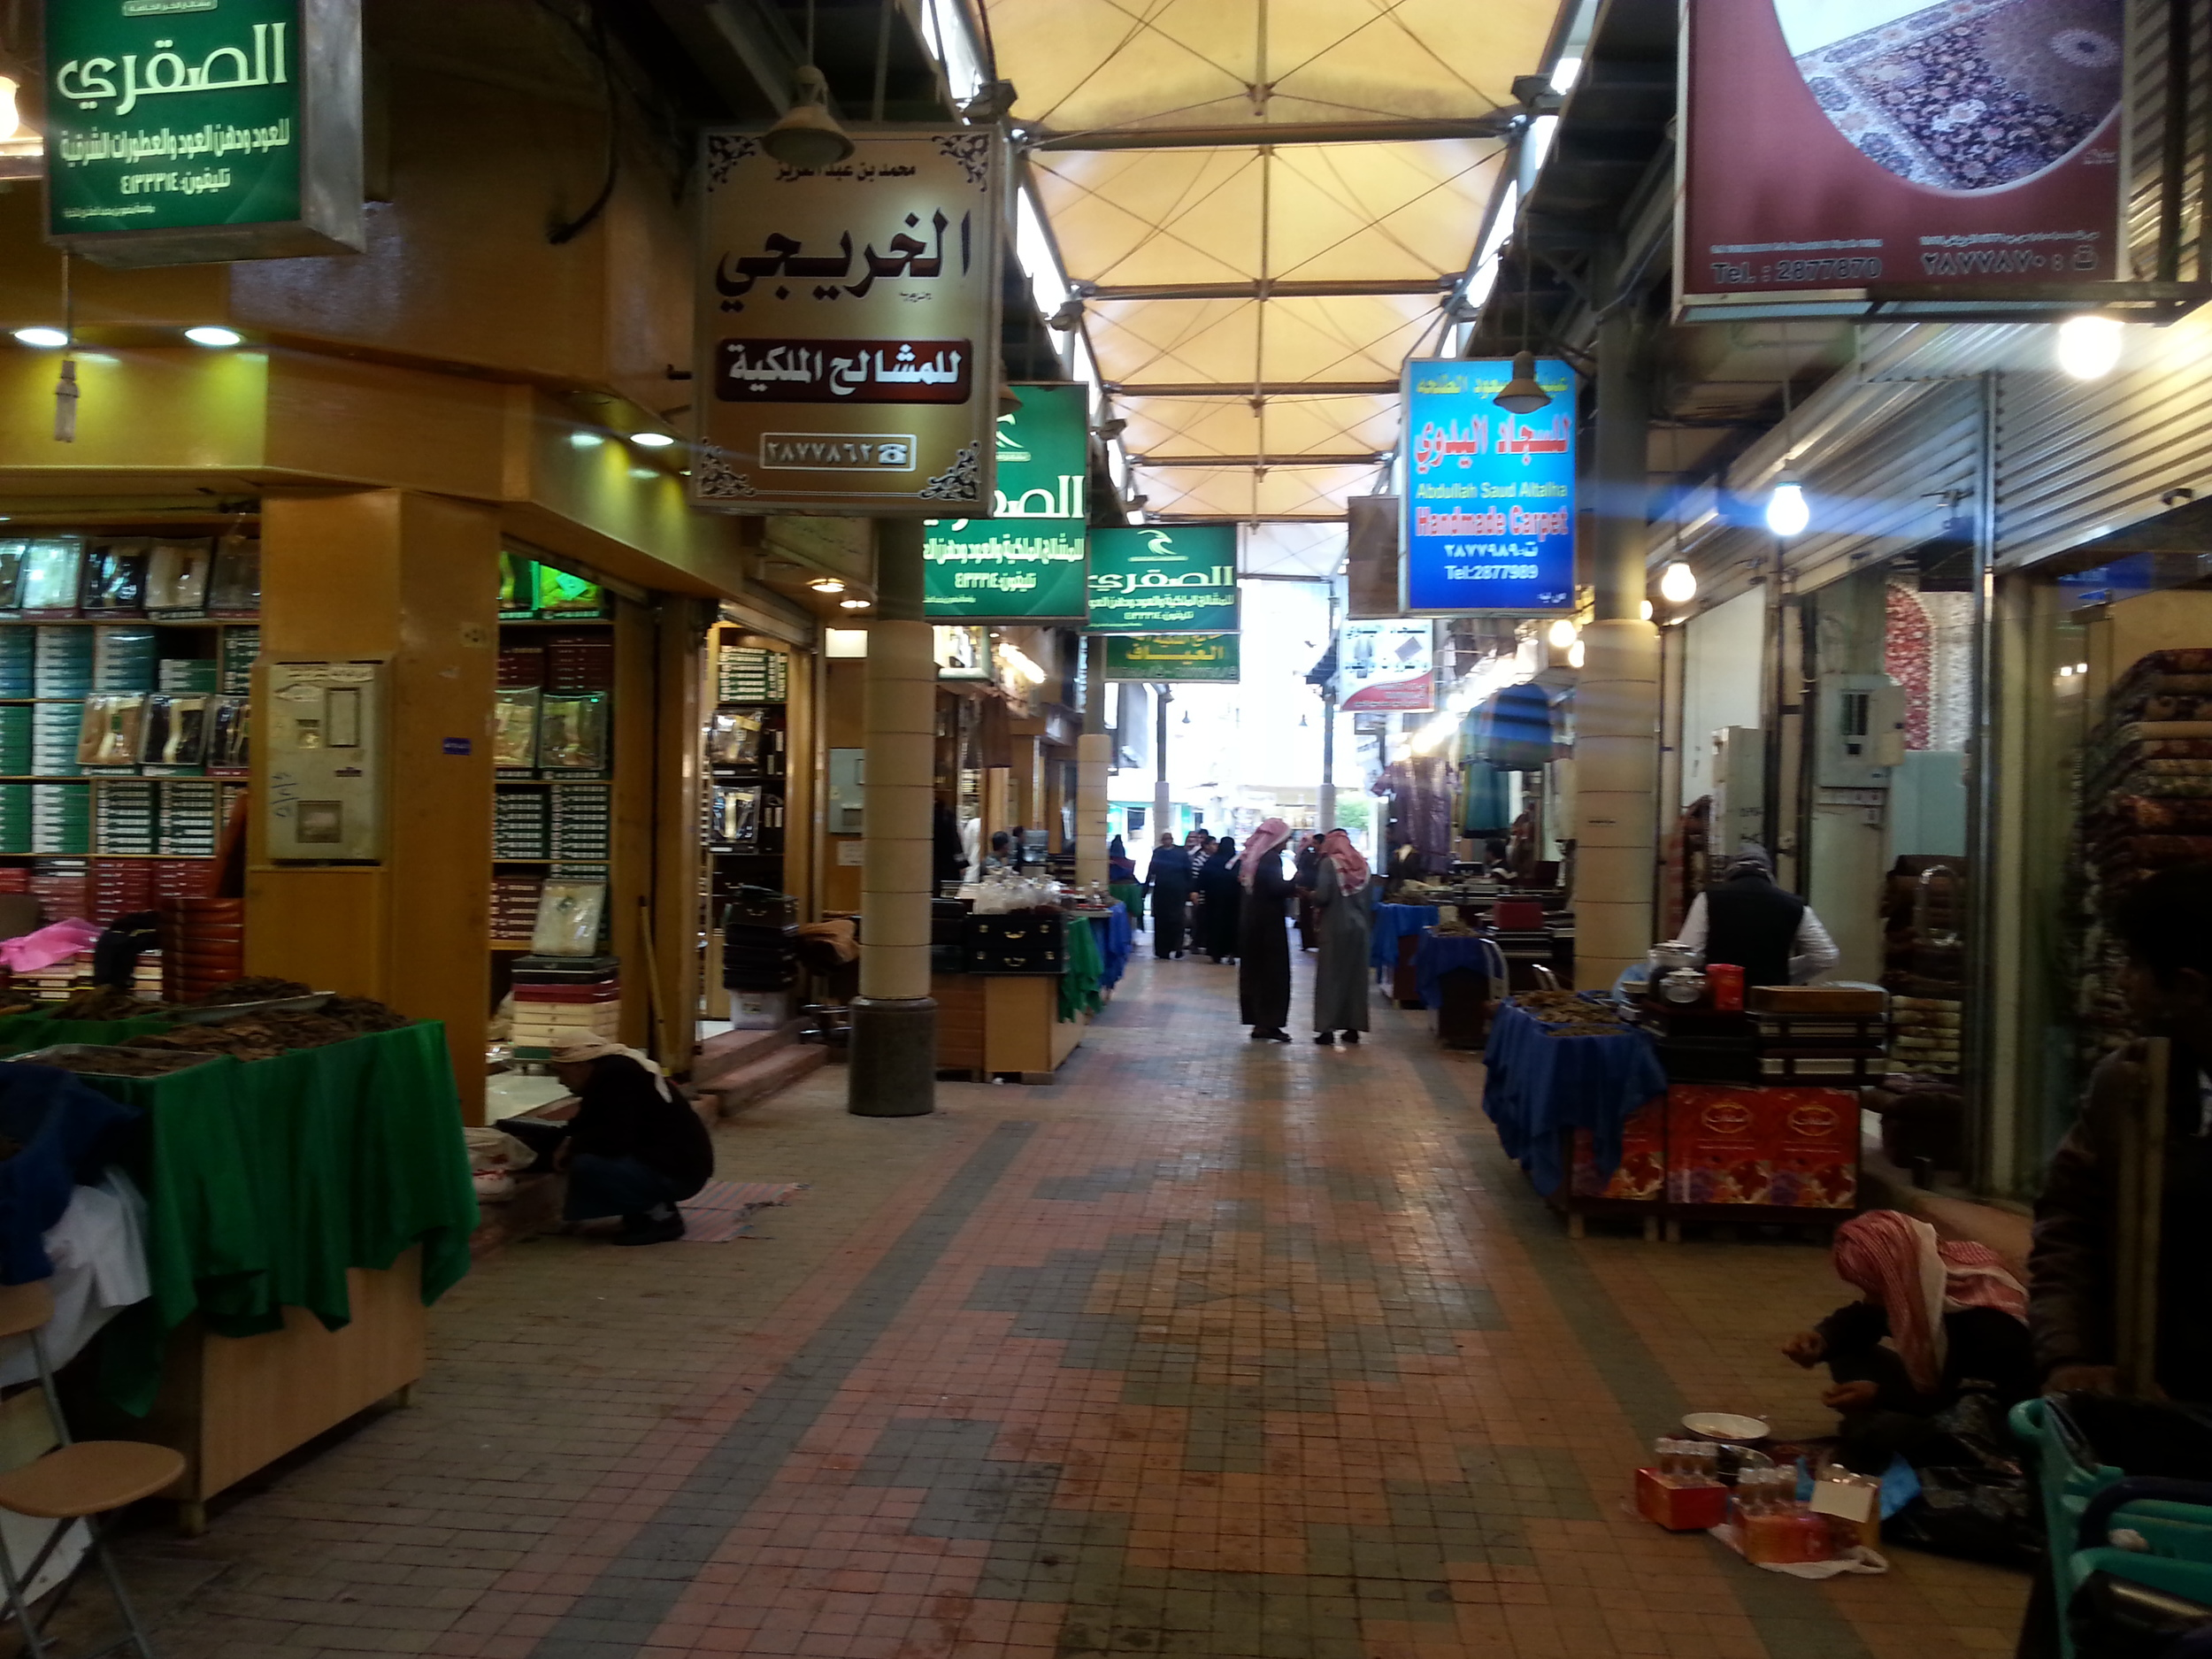 Outside the historical center are old souks where gold, jewelry, watches, carpets, oudh (incense), and traditional Arabic garb are sold.